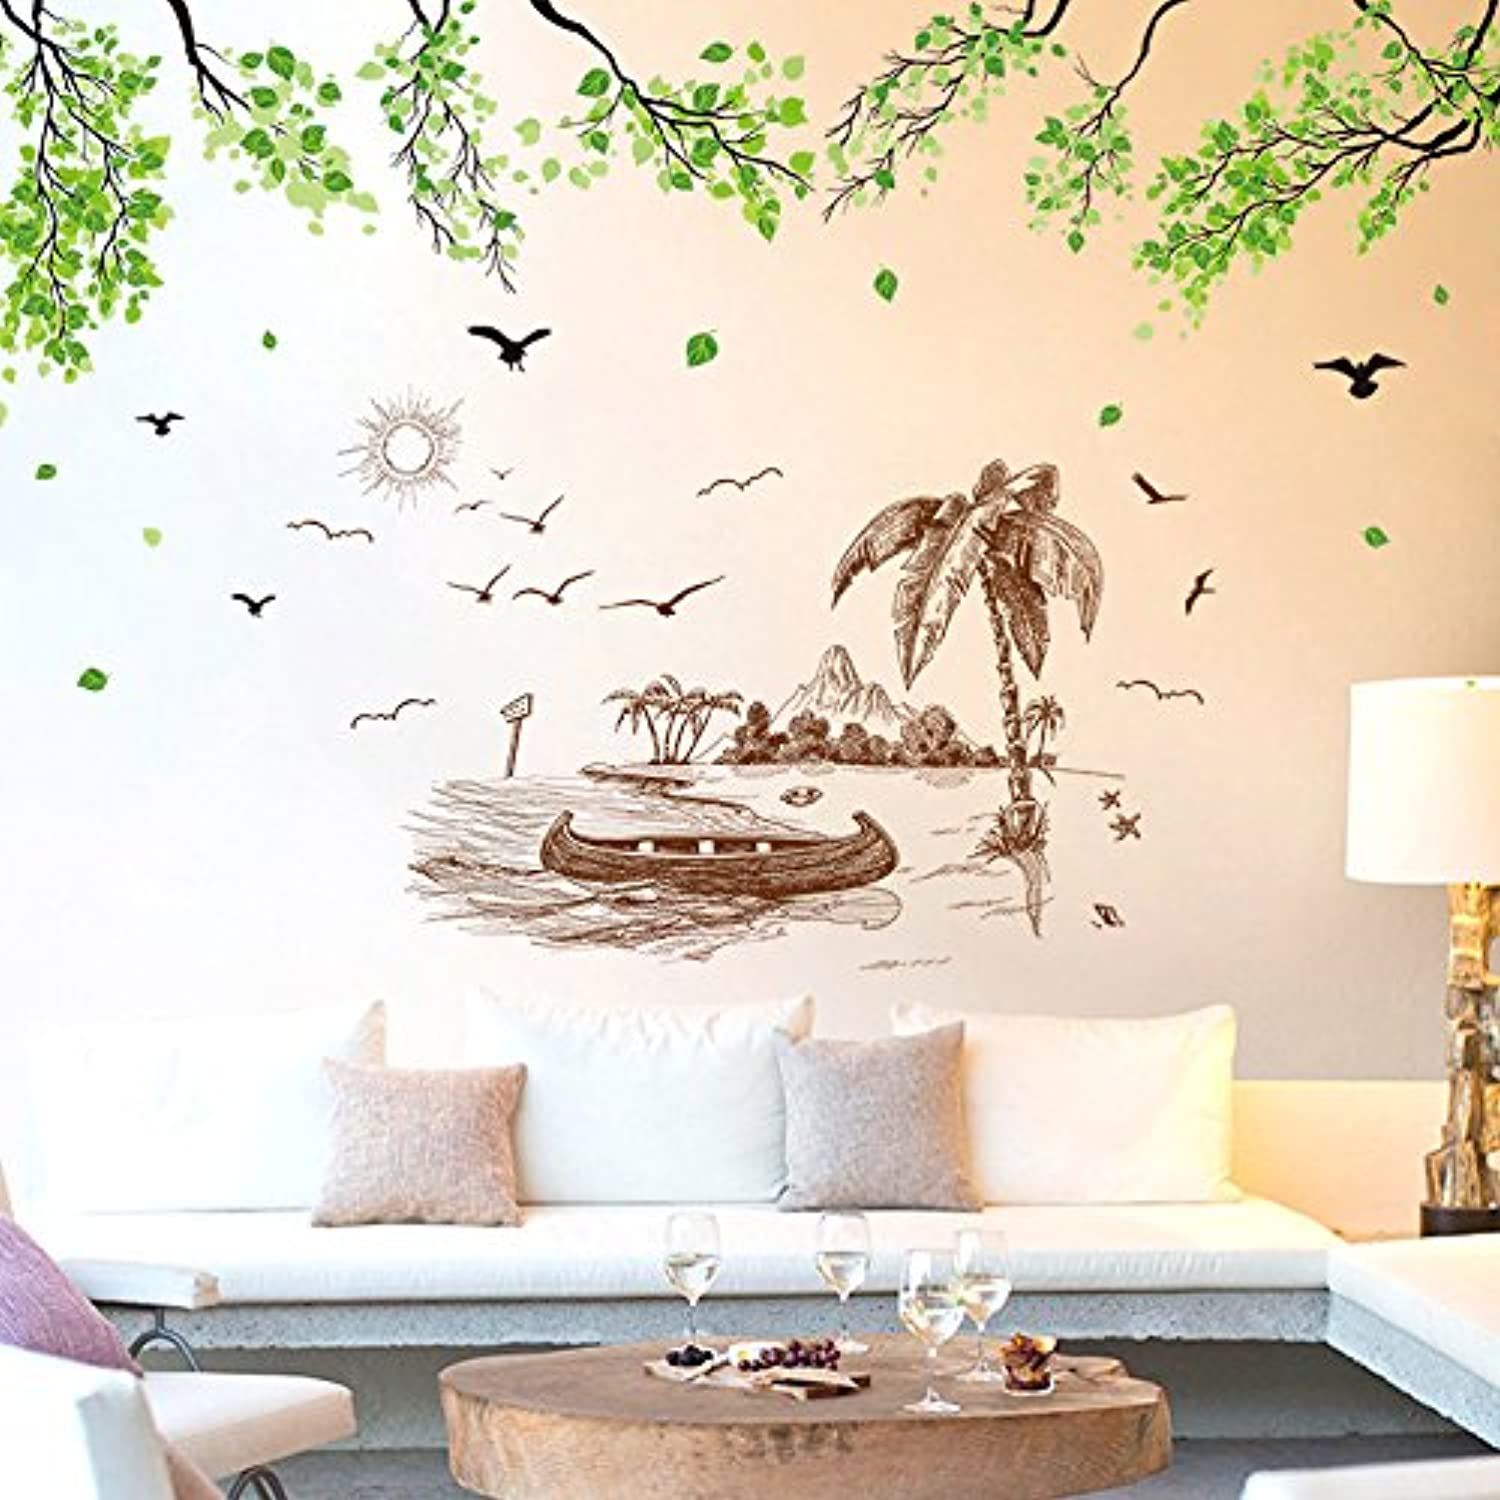 Znzbzt Wall Paper SelfAdhesive Wall Art Wall Sticker Art Room Wall Decoration Wallpaper, Green Trees